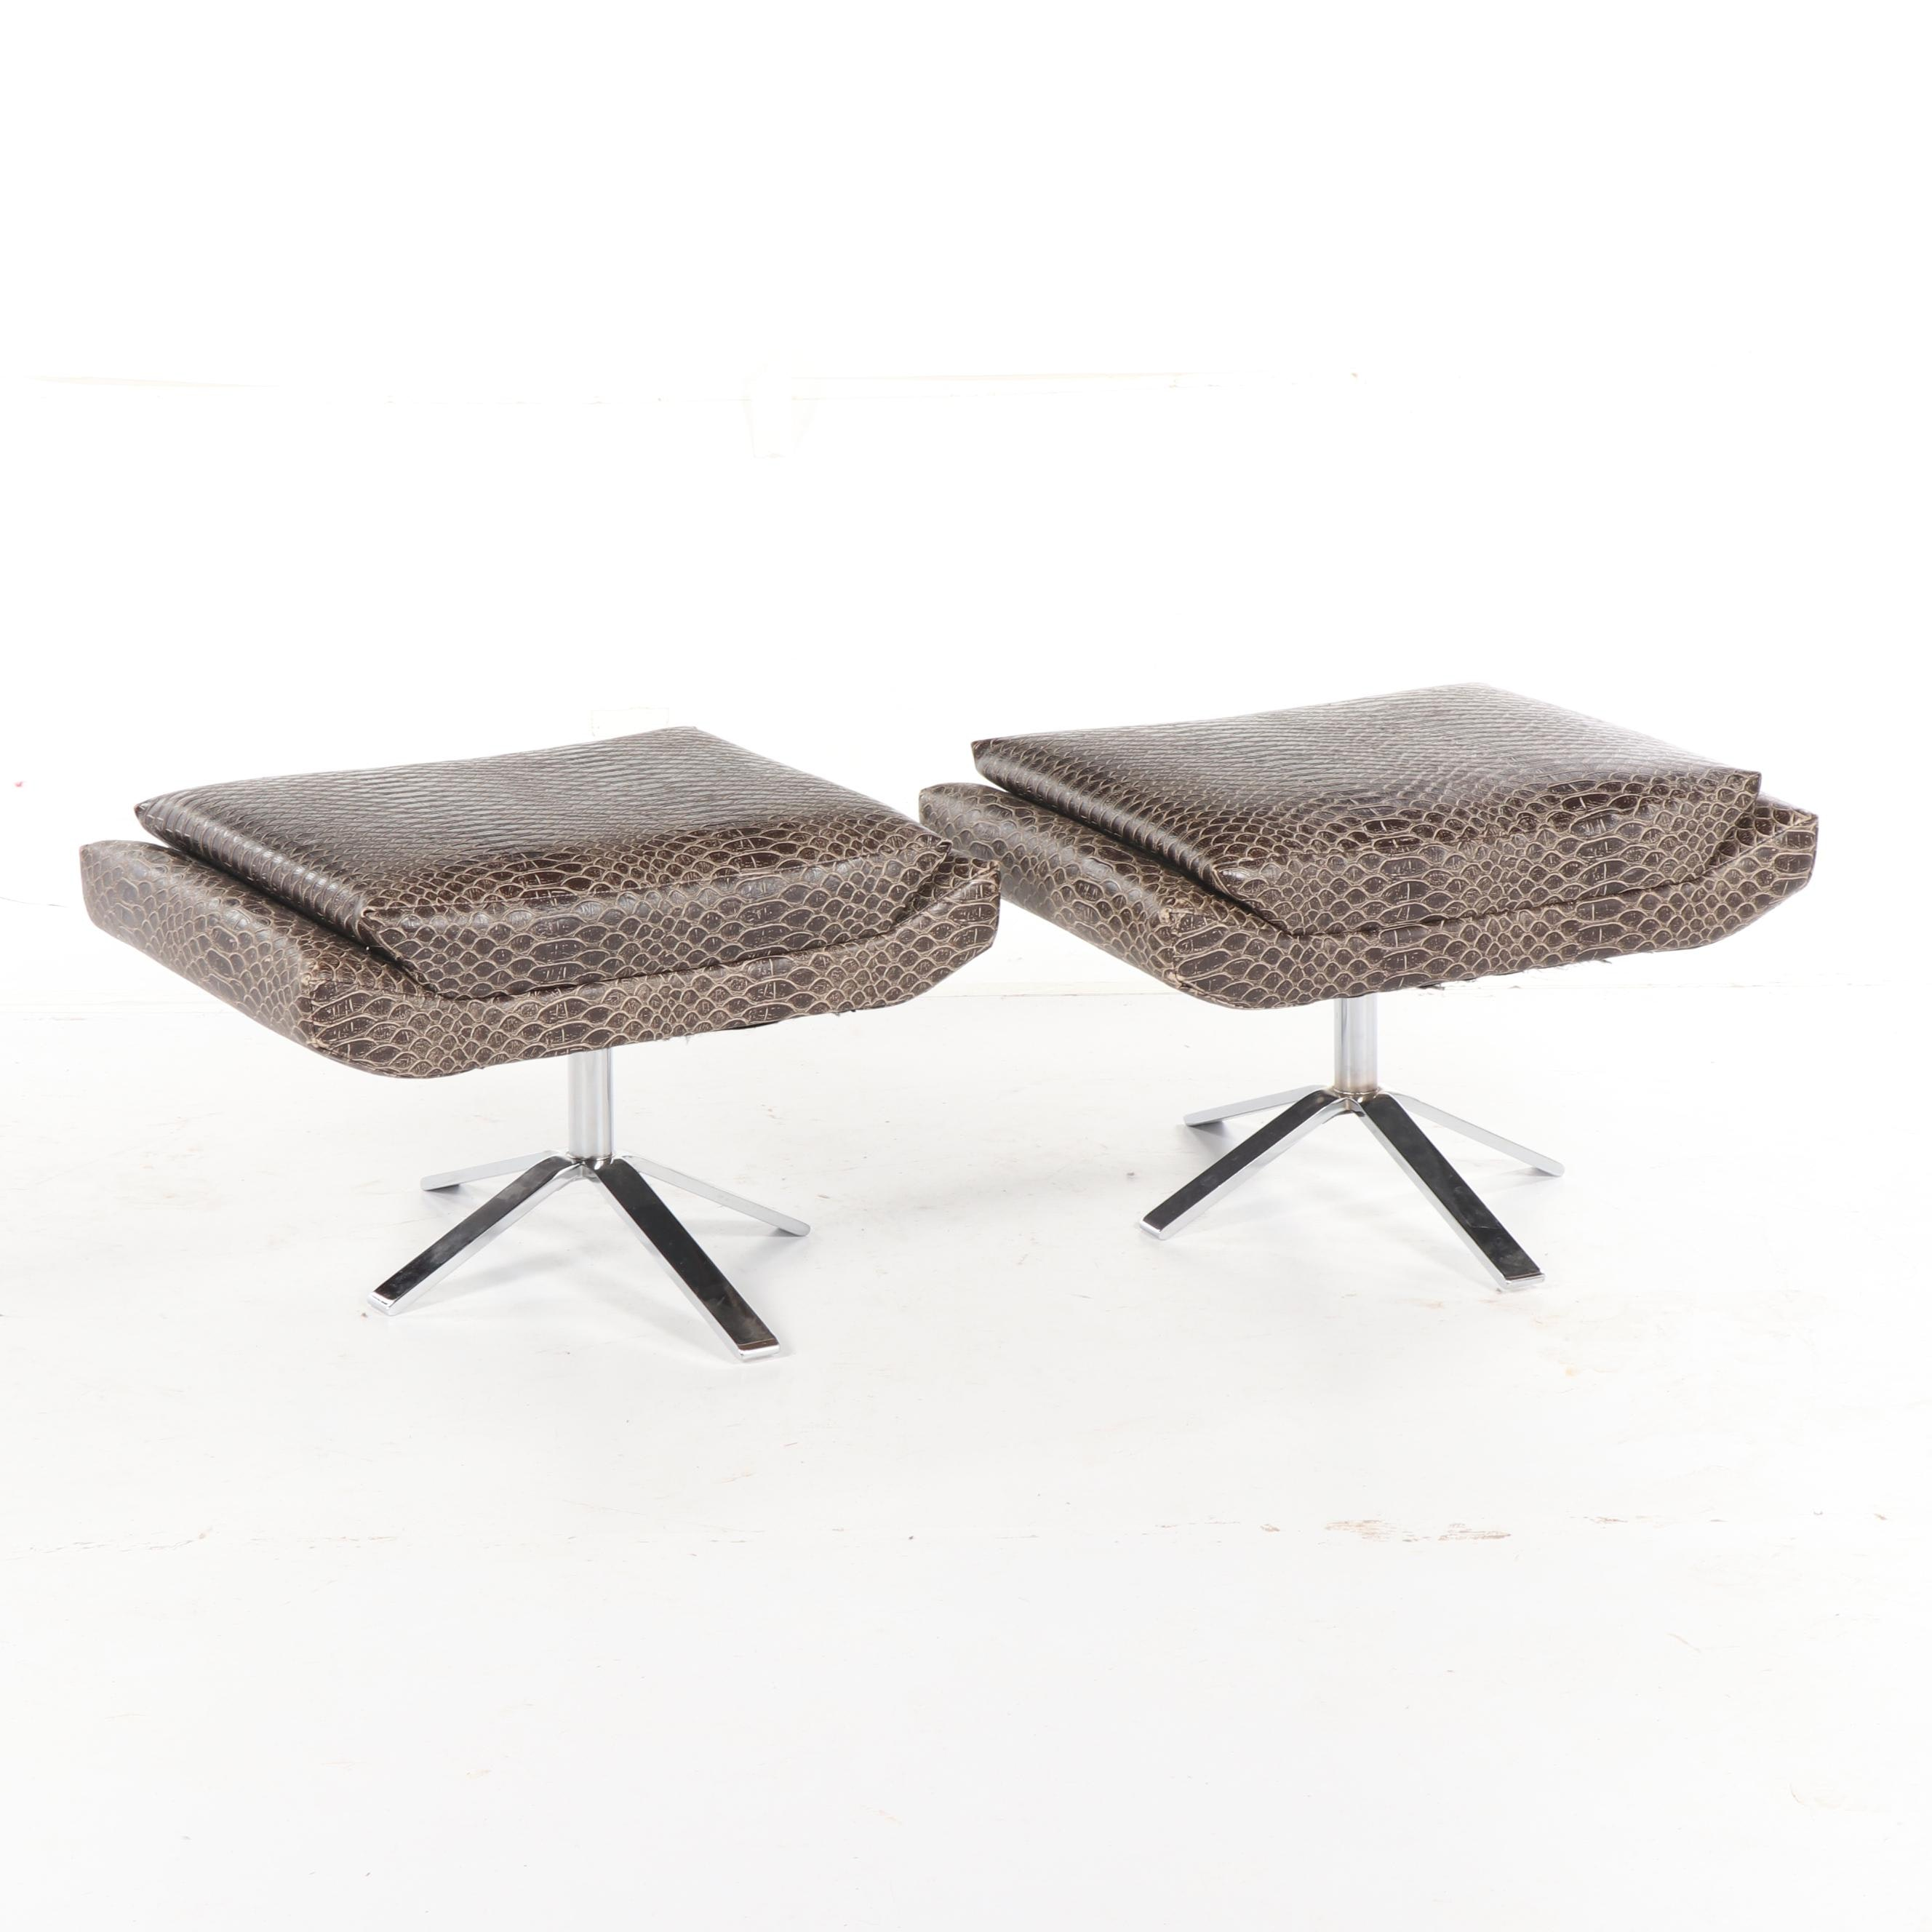 Faux Leather and Metal Footstools, Mid-20th Century